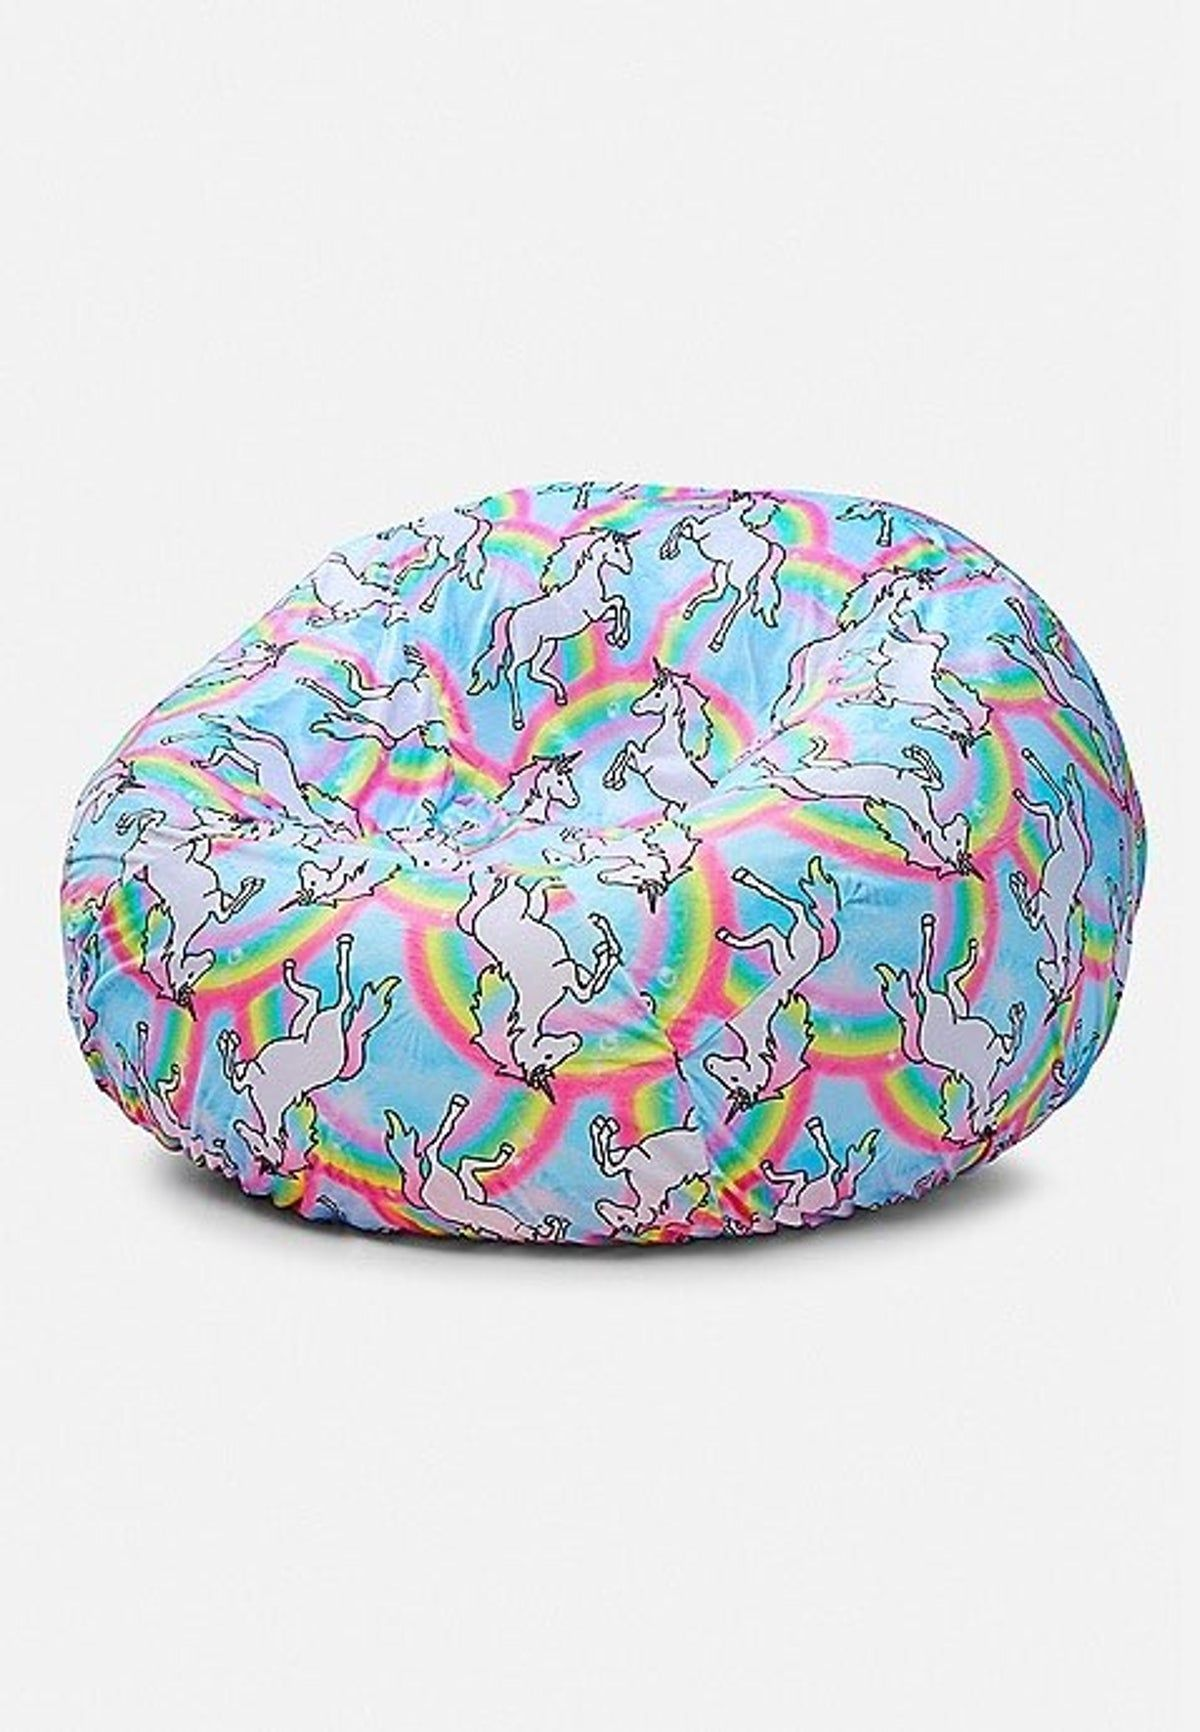 Justice Chair And Unicorn Chair Cover Chair Cover Justice Unicorn In 2020 Unicorn Room Decor Unicorn Bedroom Personalized Decorative Pillow